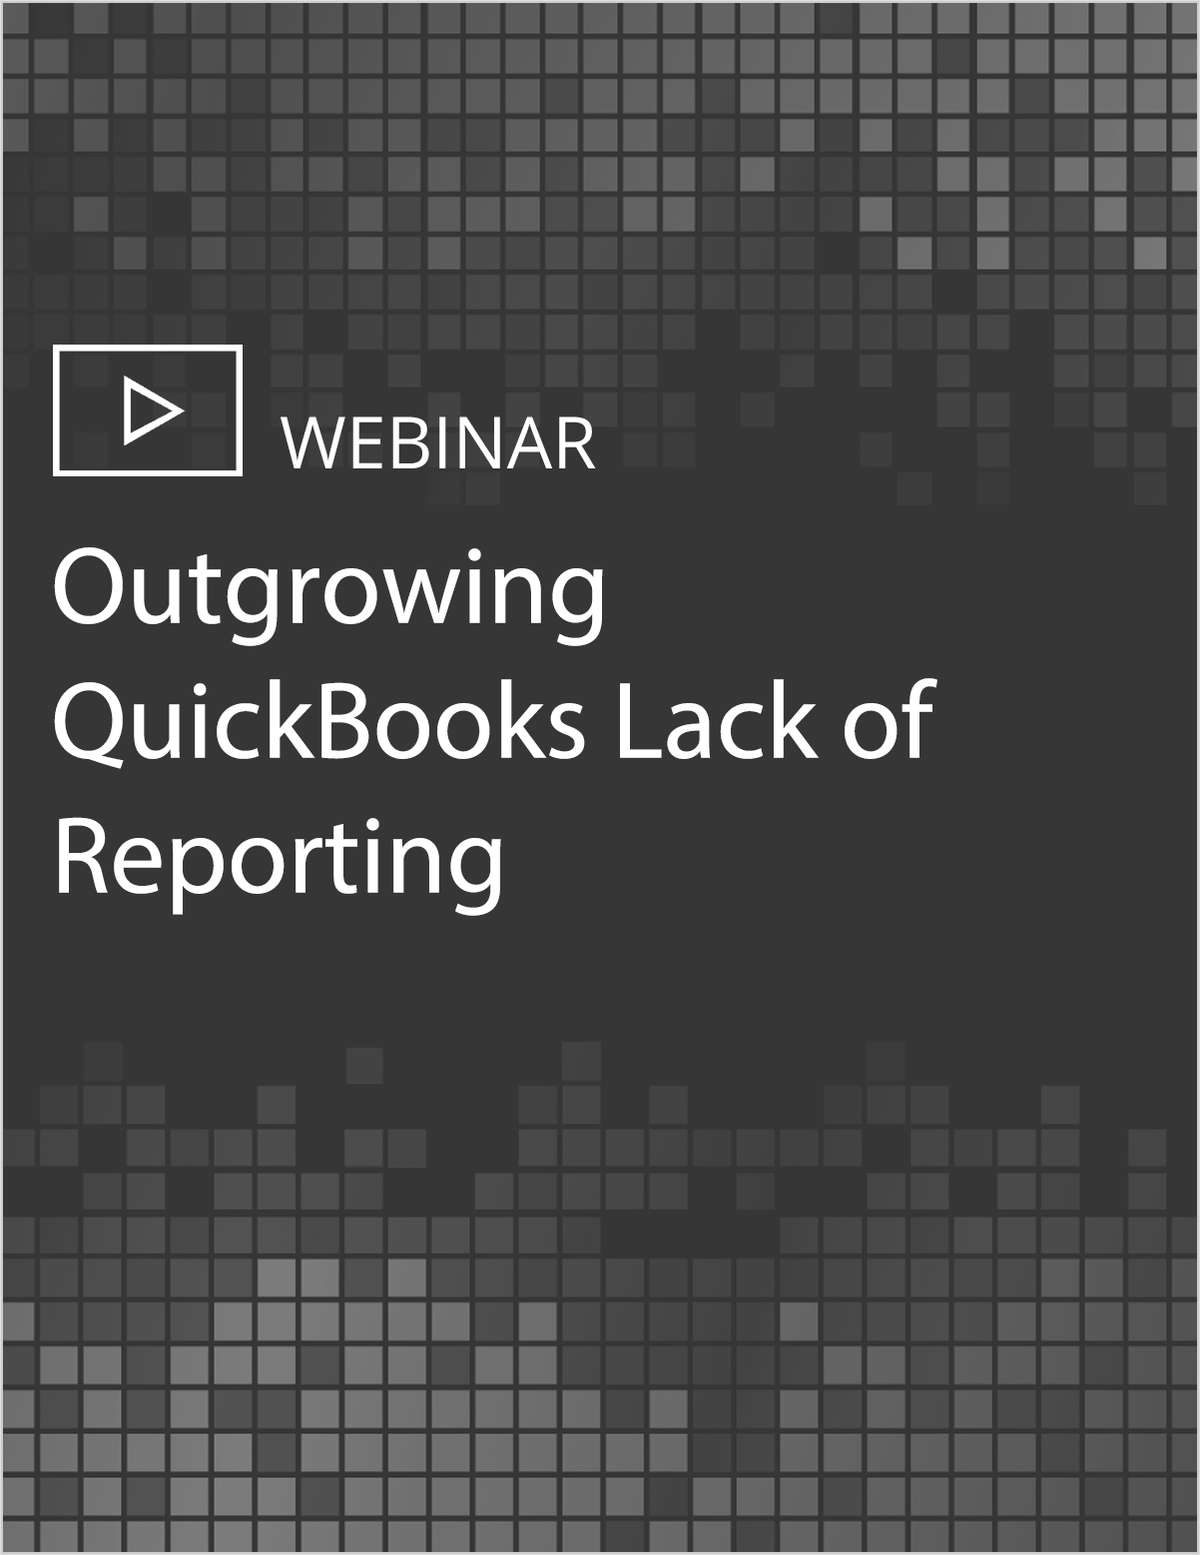 Outgrowing QuickBooks Lack of Reporting